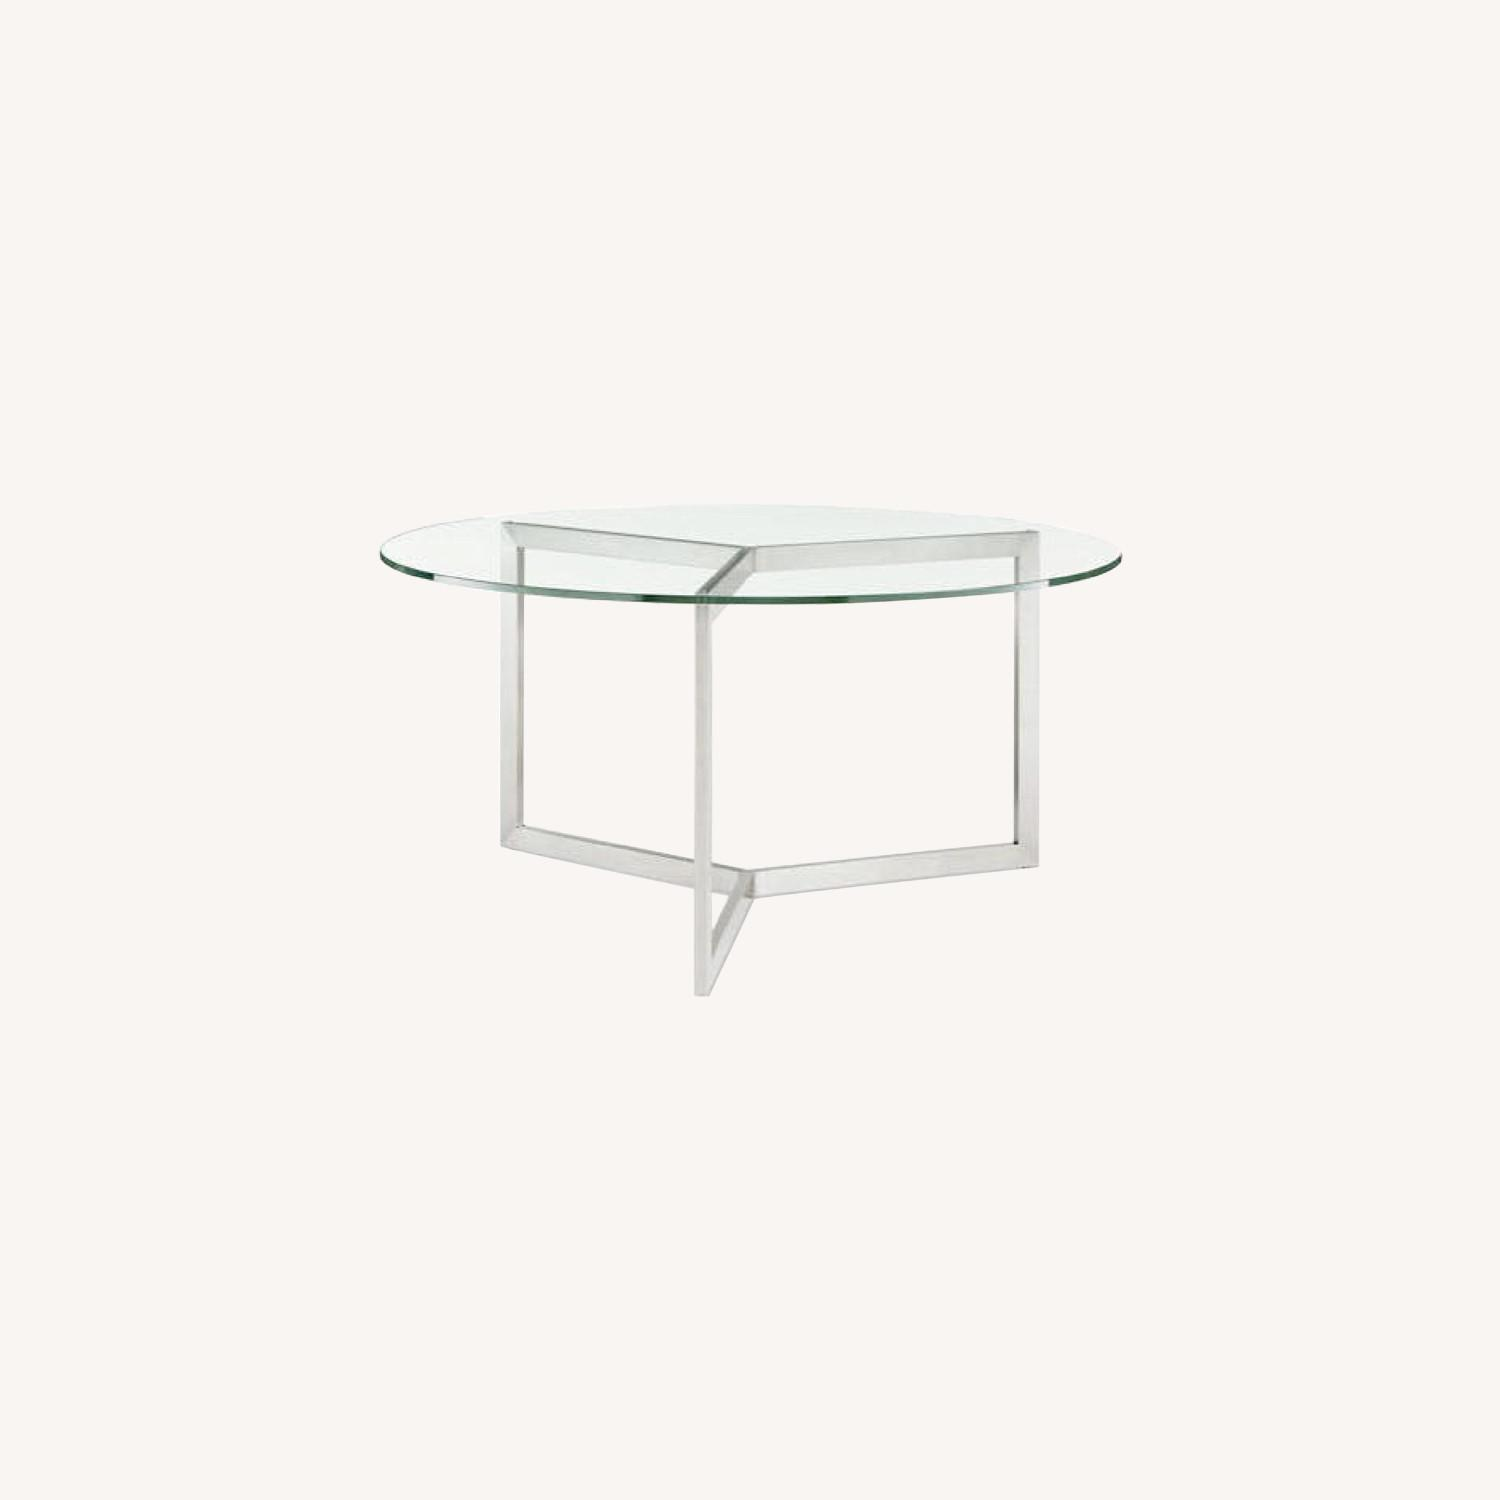 Room & Board Glass Dining Table - image-4